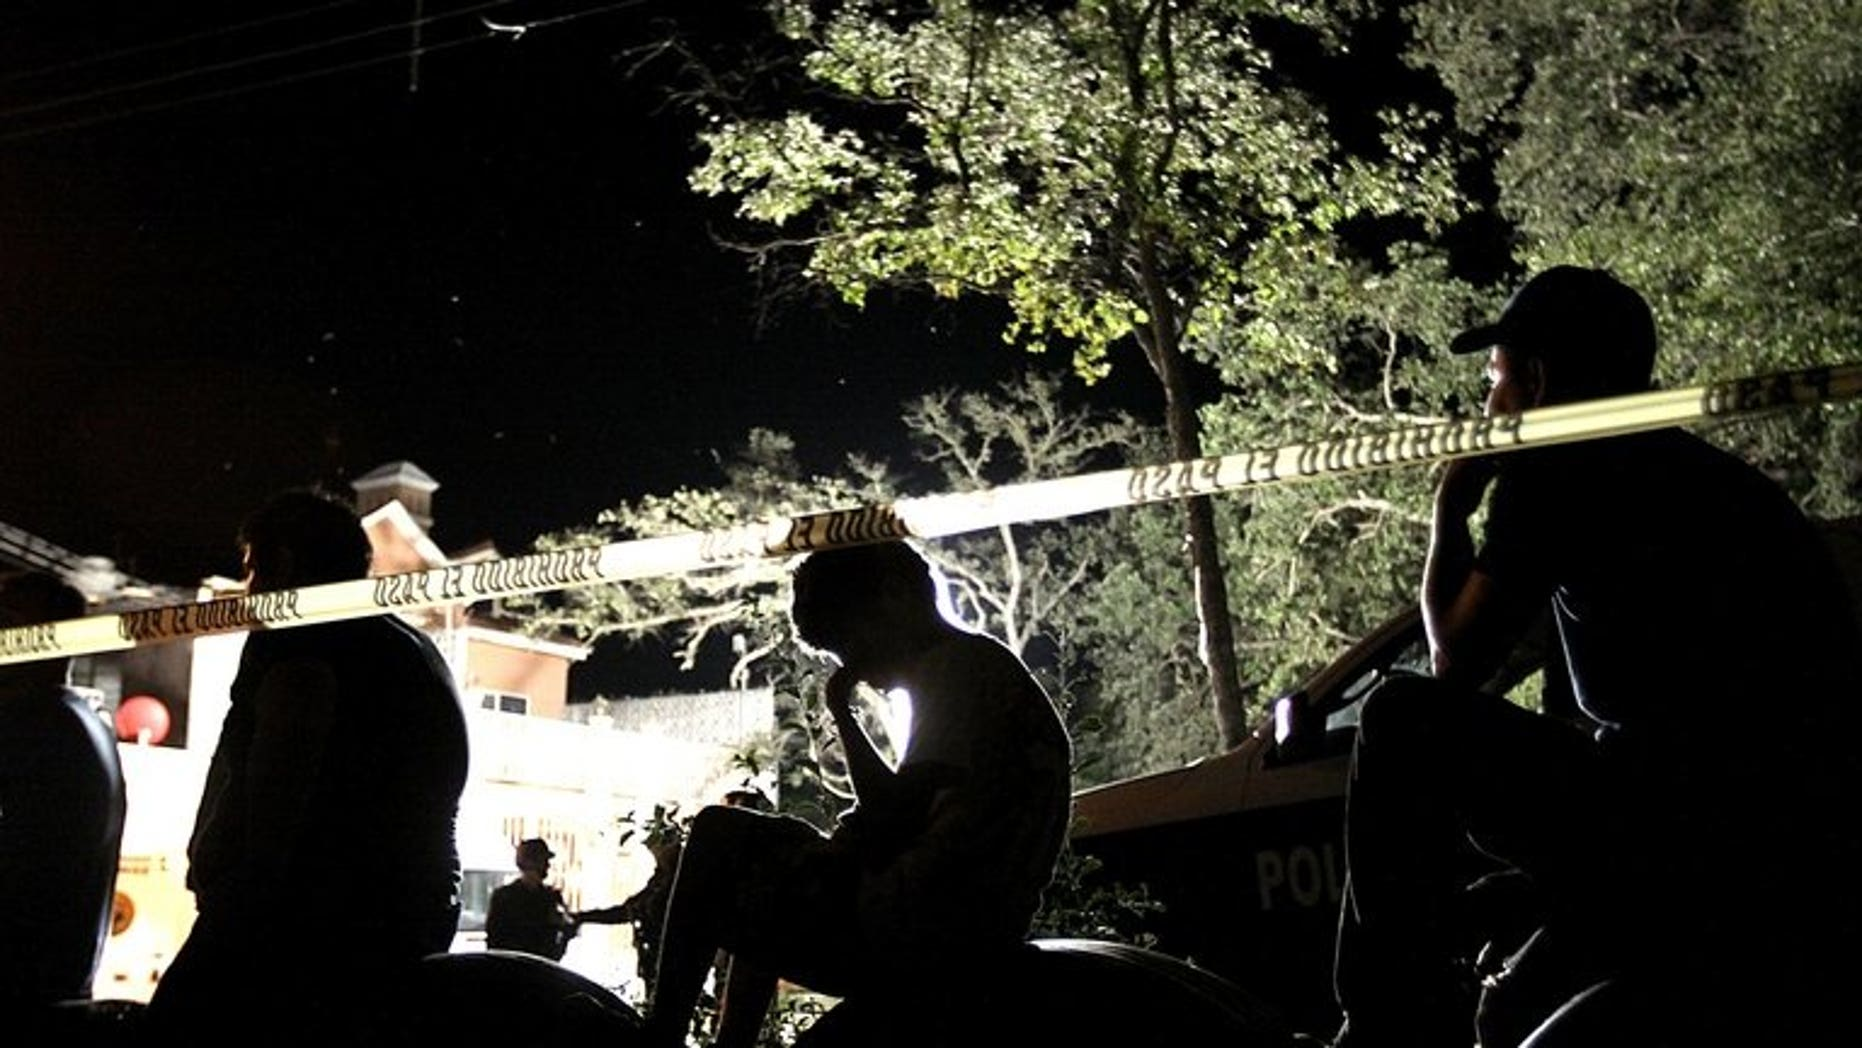 People observe police at a crime scene in Mexico on October 22, 2012. Mexican authorities are investigating whether human remains found in a park outside the capital belong to 12 young people whose kidnapping in May shocked the city, officials said Thursday.